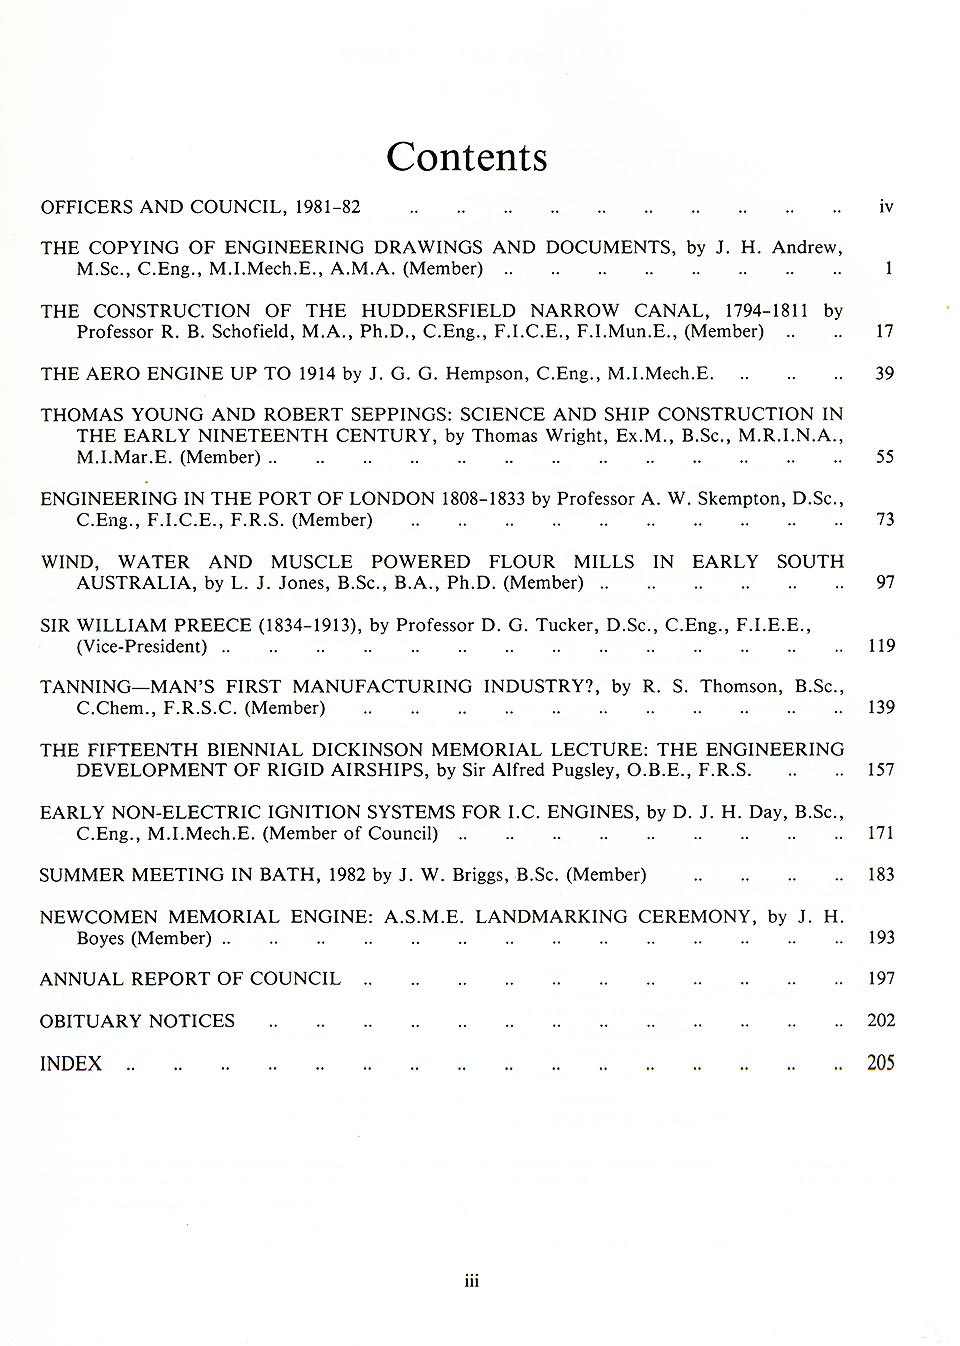 The Journal - V53 No1 1981-82 - contents Paperback